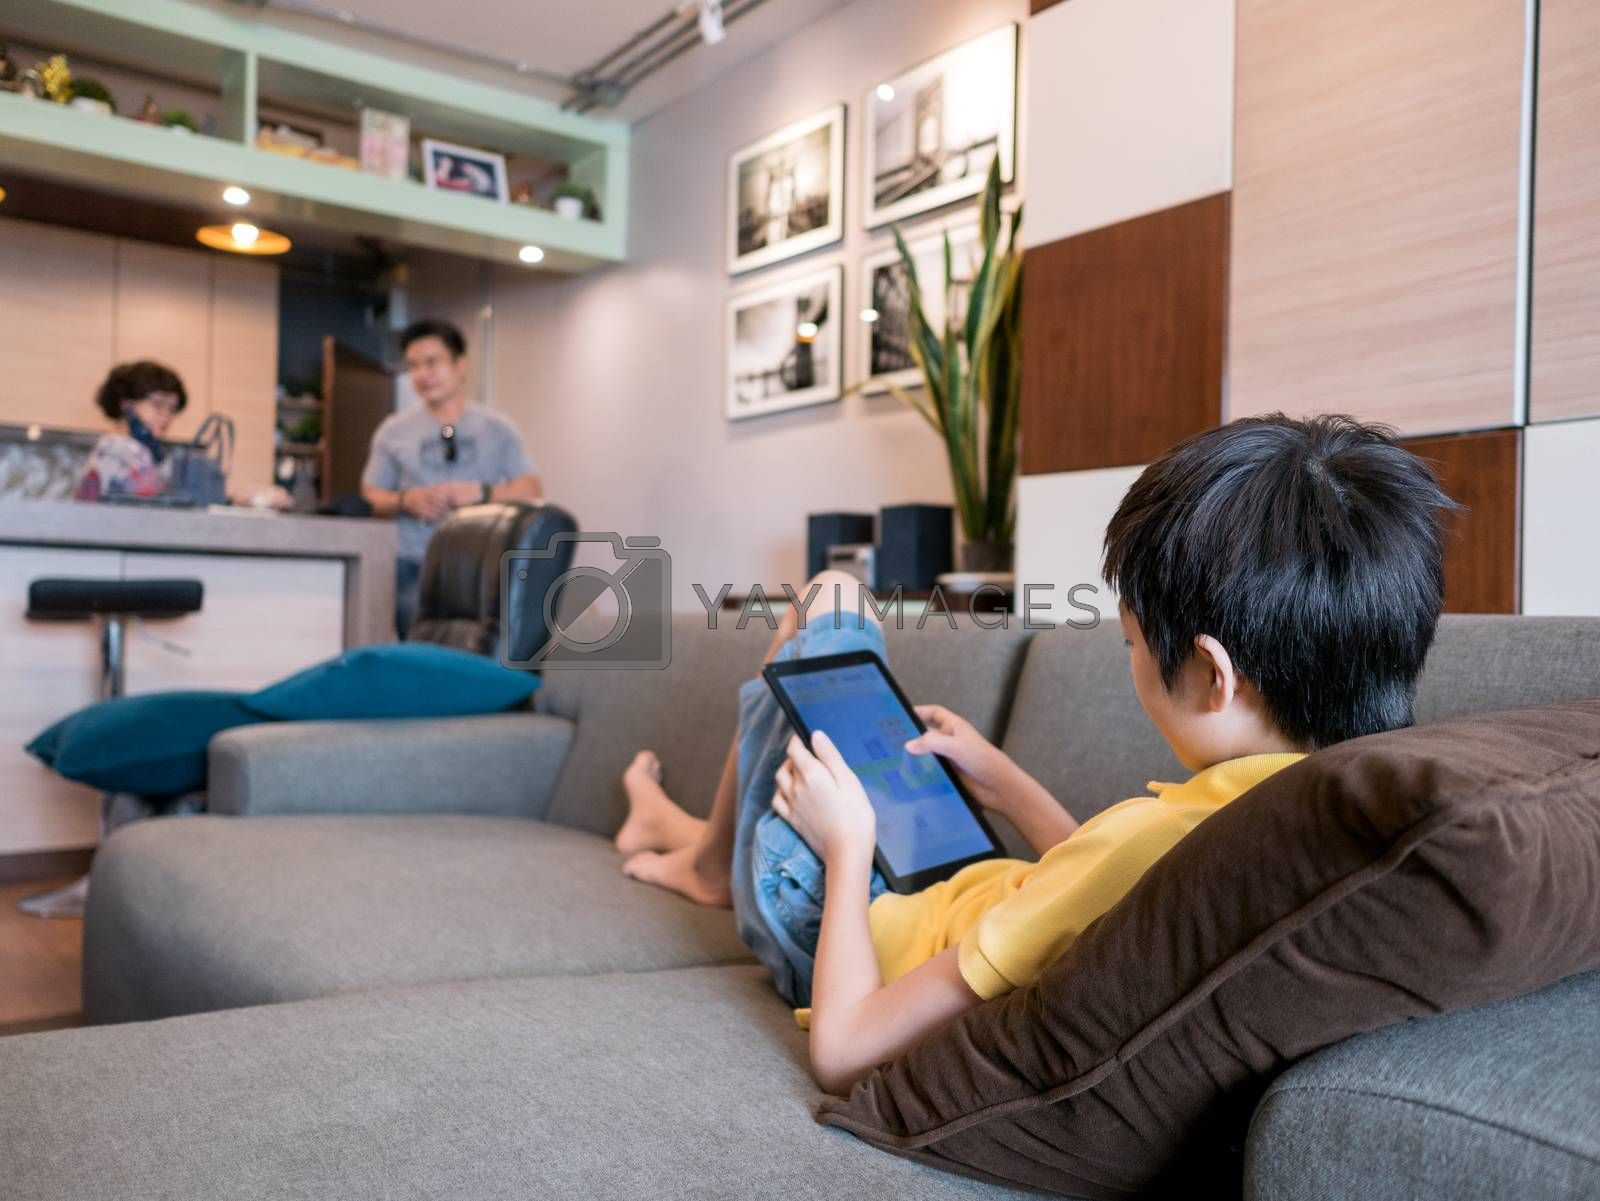 cute asian boy lying on sofa in living room at home, using tablet, parents on blurred background. Study online, stay home concept.